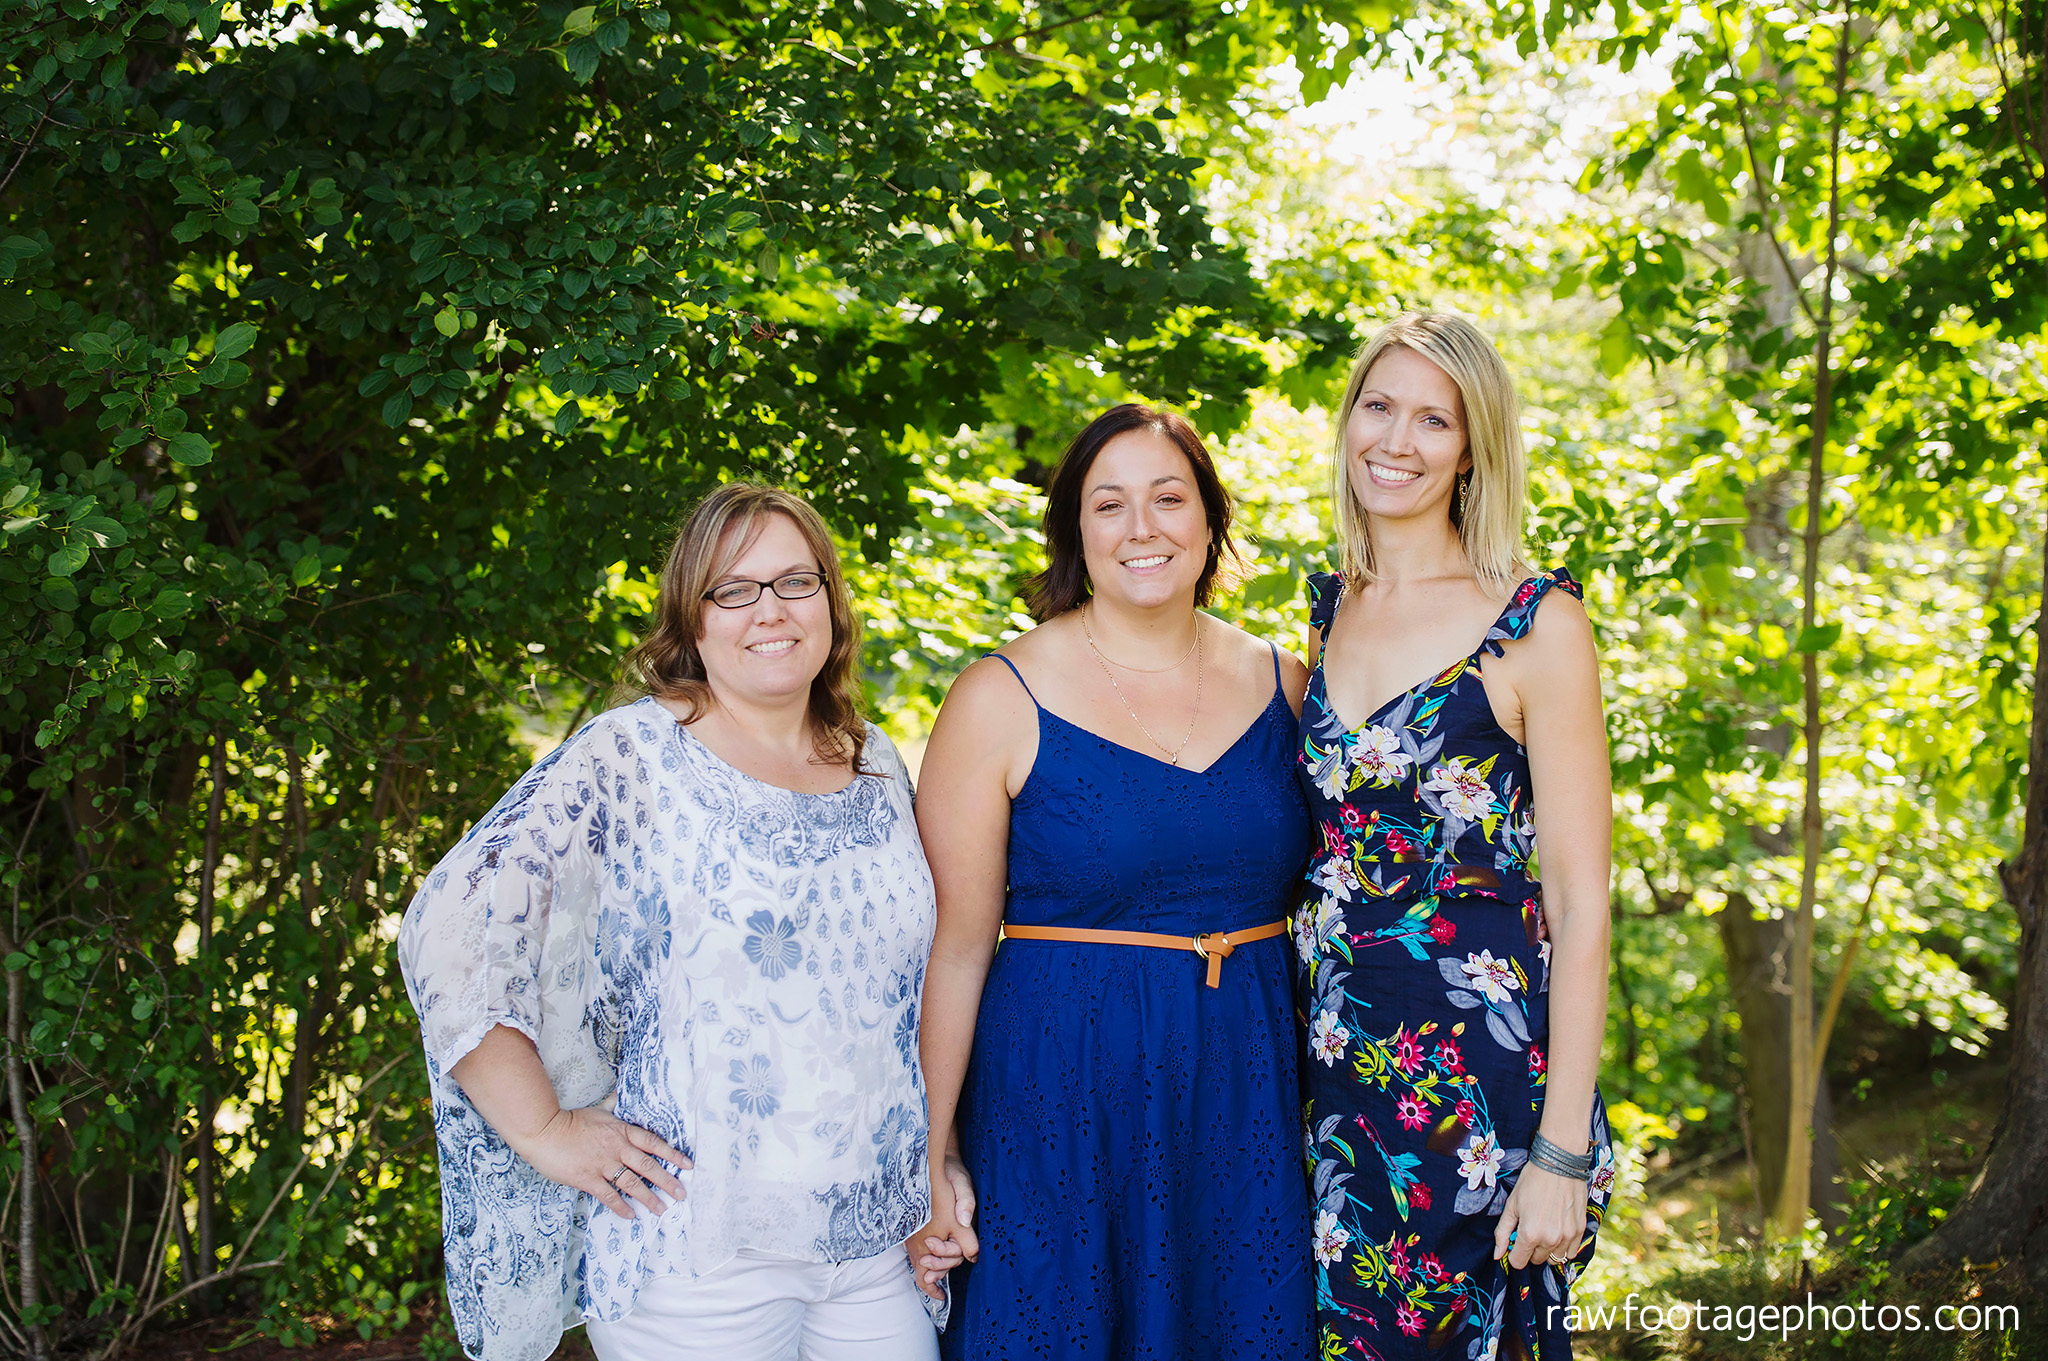 london_ontario_extended_family_backyard_session-raw_footage_photography029.jpg